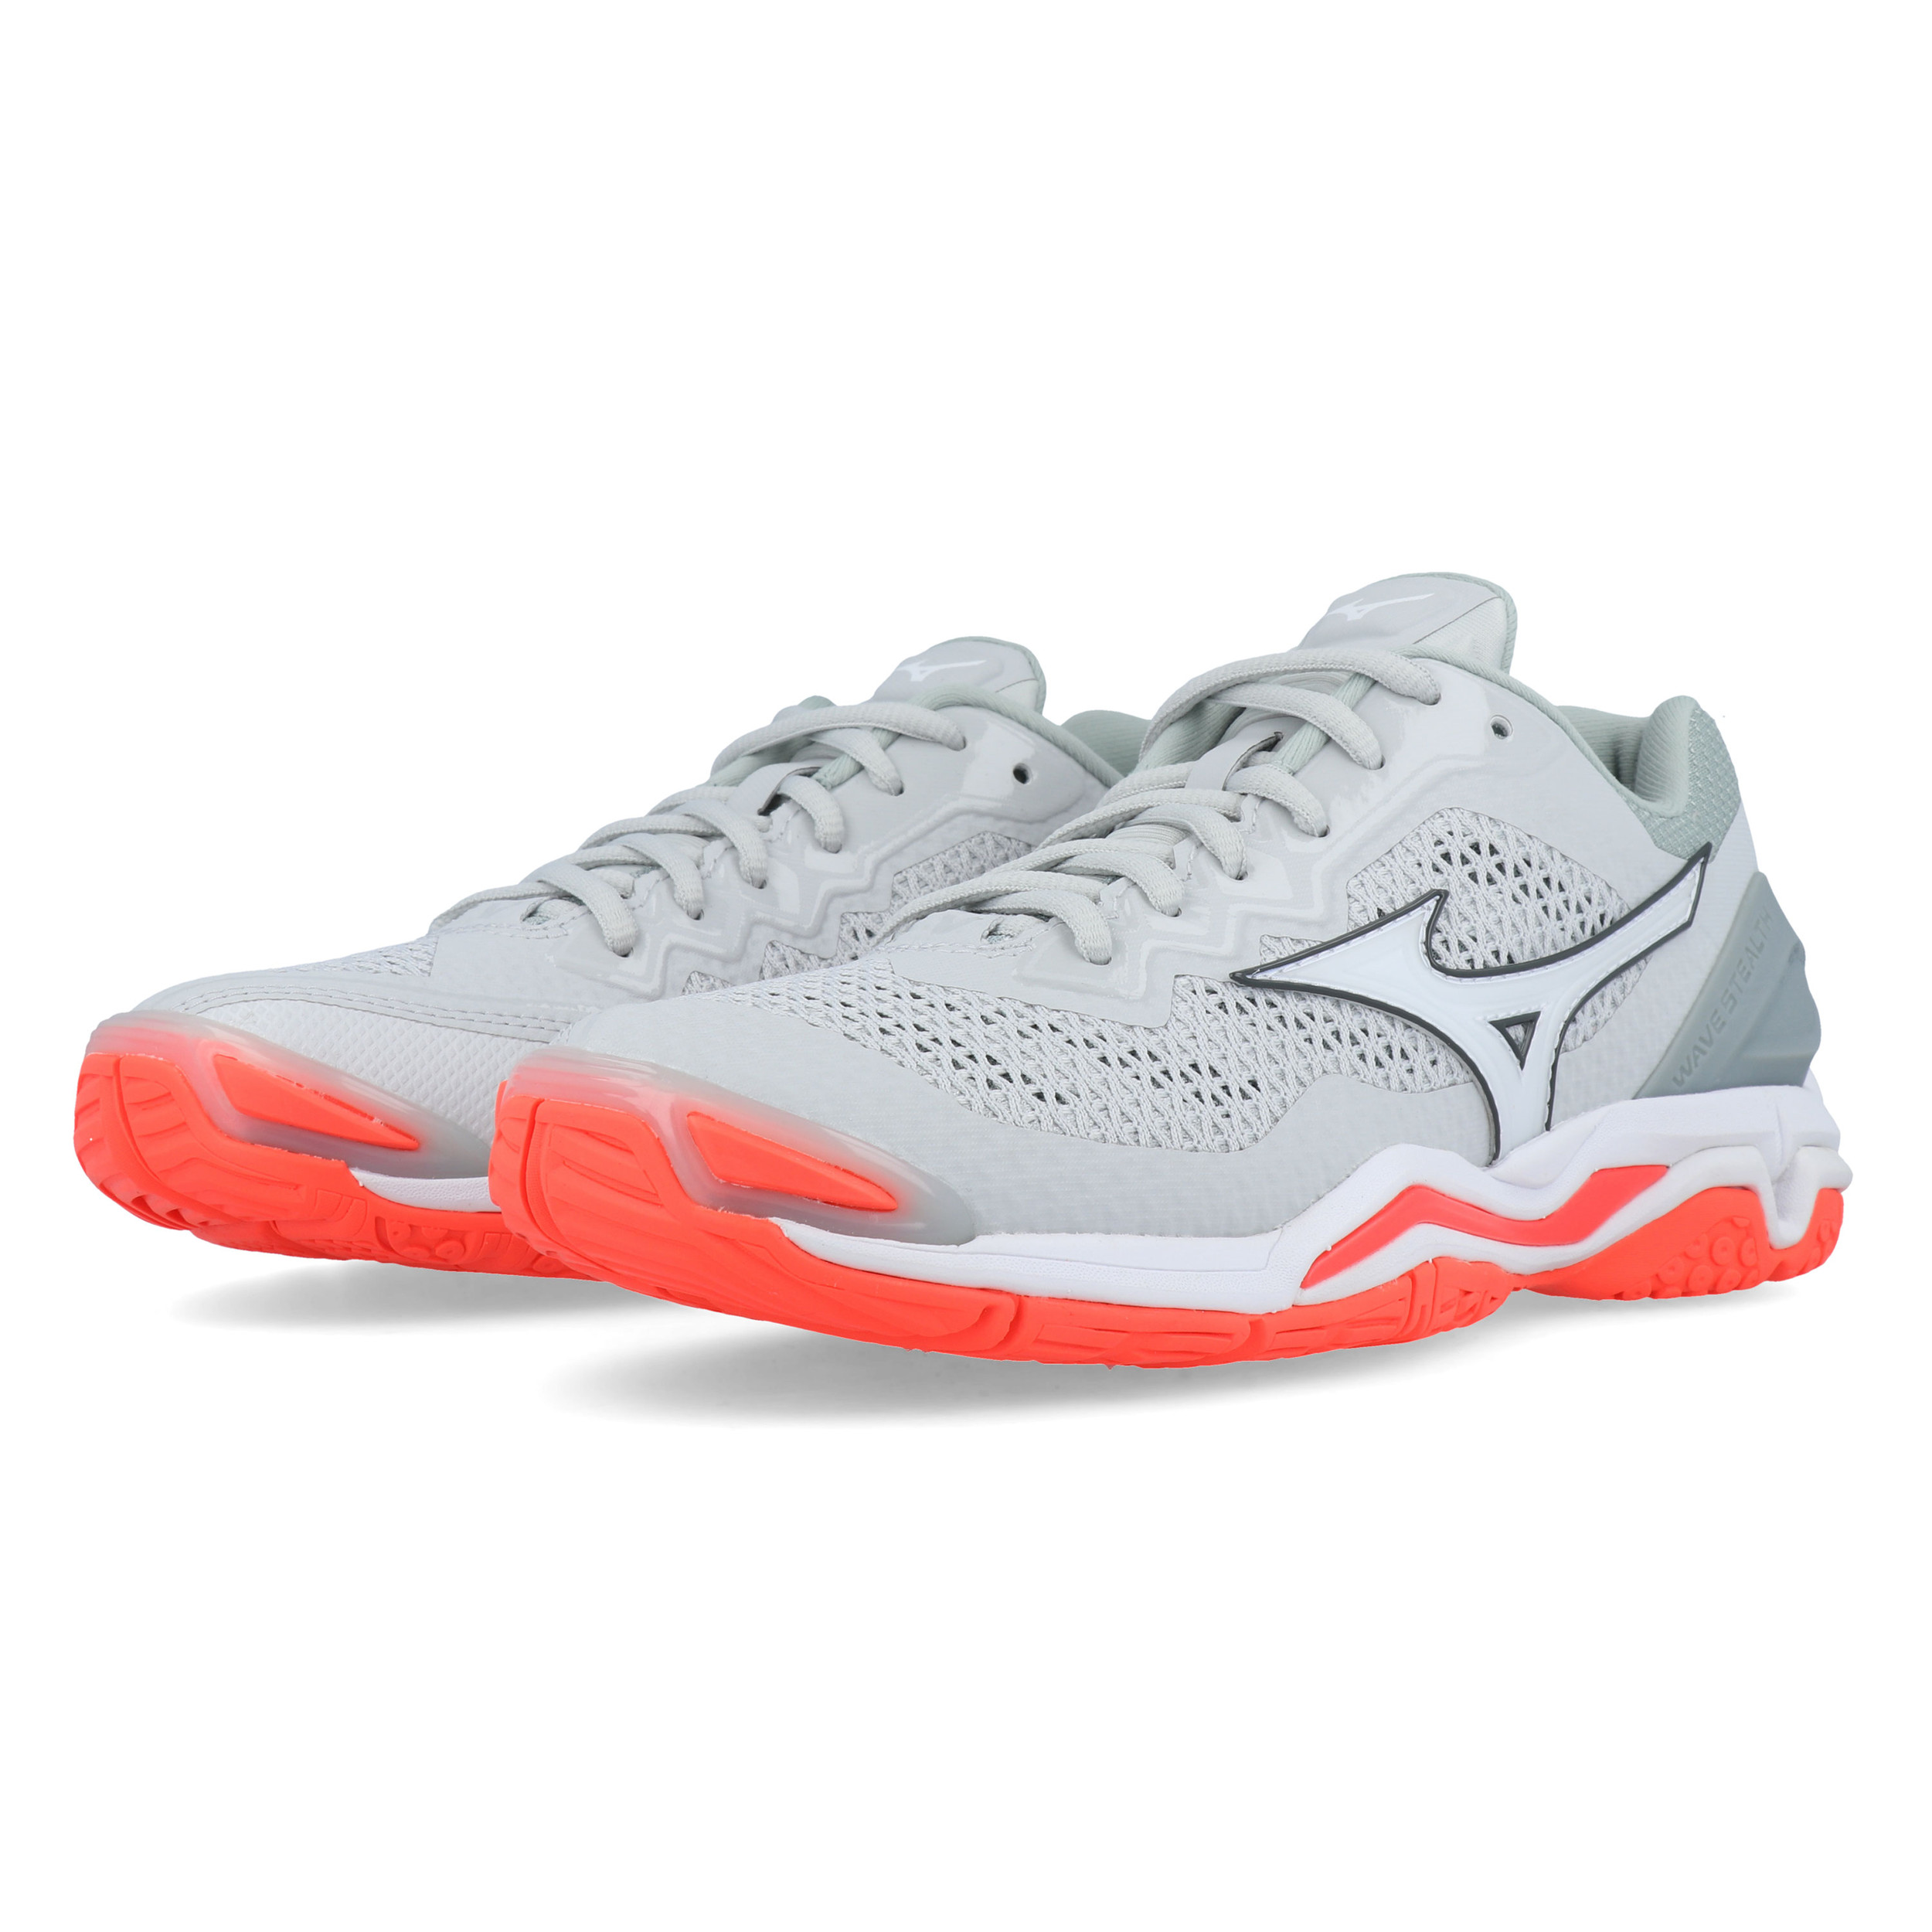 Mizuno Wave Stealth V Women's Indoor Court Shoes